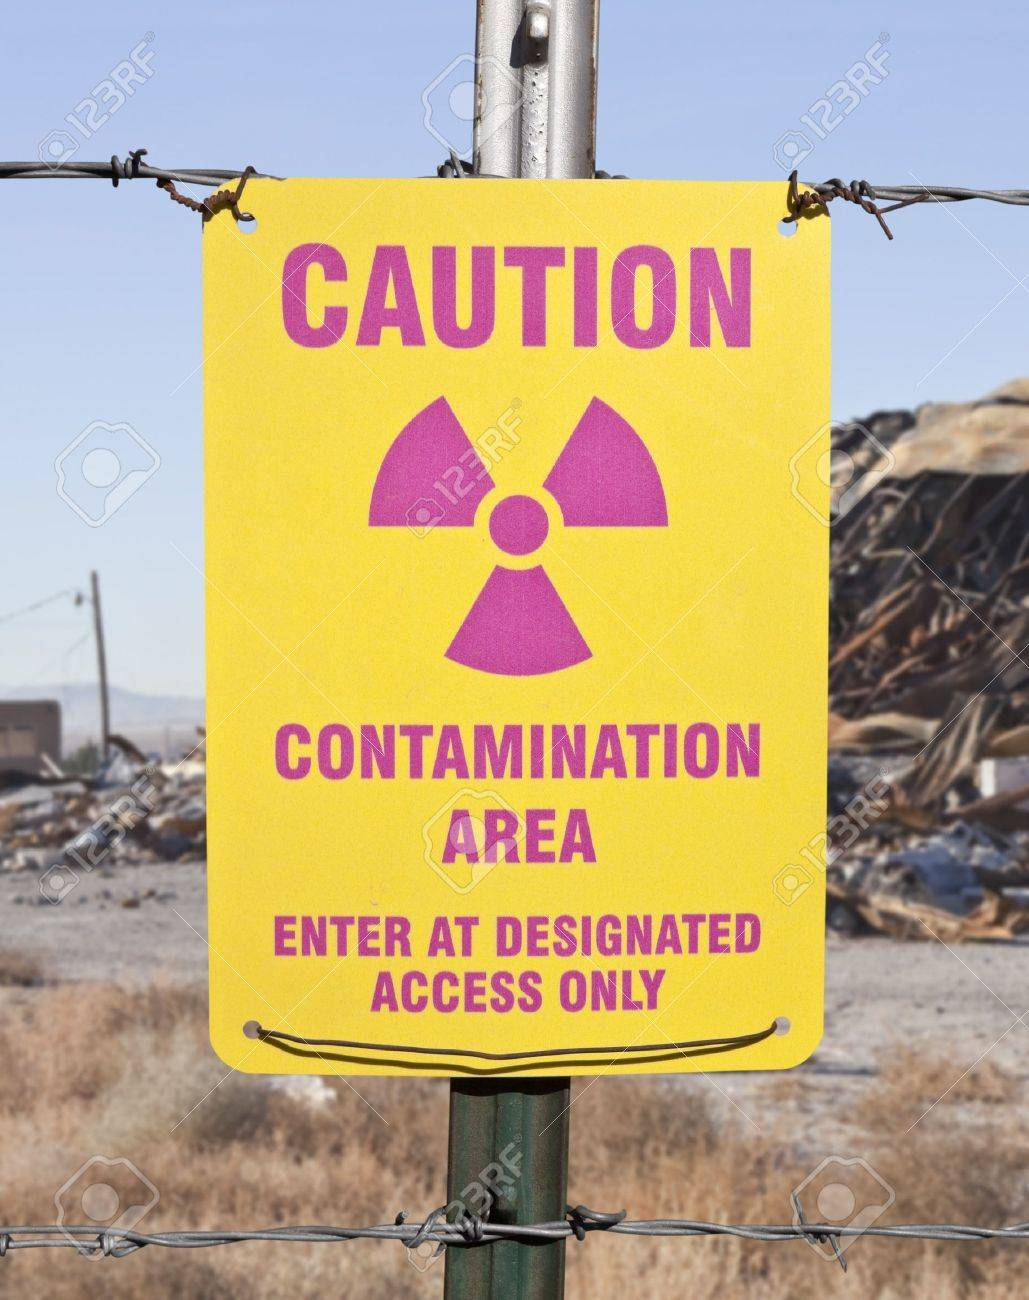 Caution radioactive contamination warning sign with barb wire fence. Stock Photo - 14331492